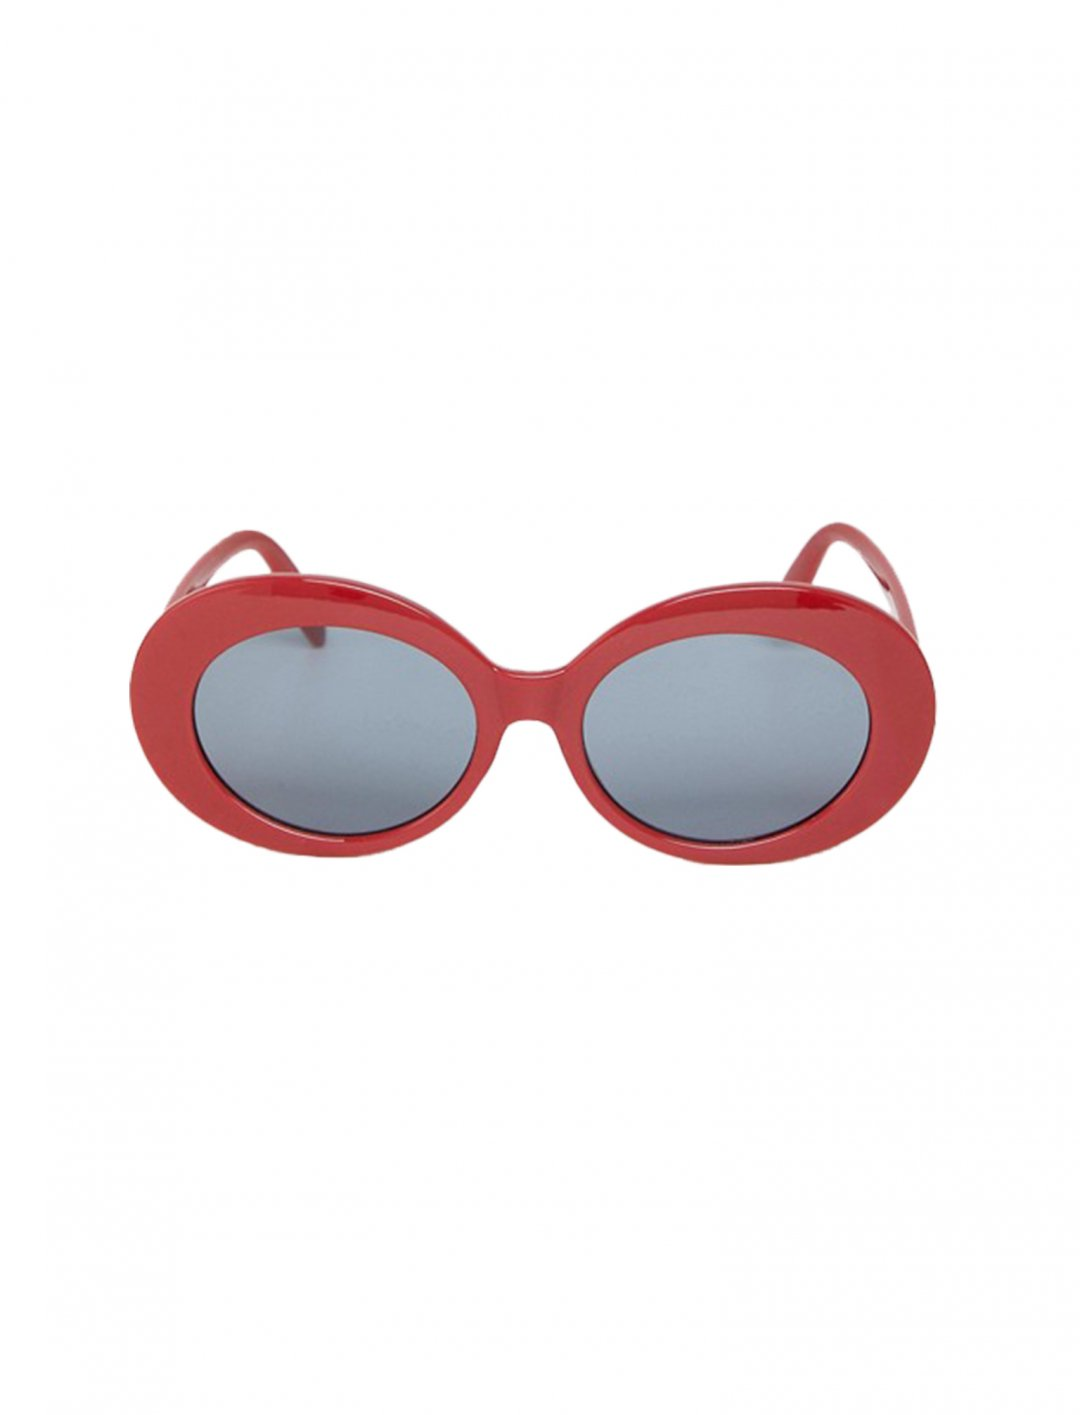 """Asos Oval Sunglasses {""""id"""":16,""""product_section_id"""":1,""""name"""":""""Accessories"""",""""order"""":15} Asos"""